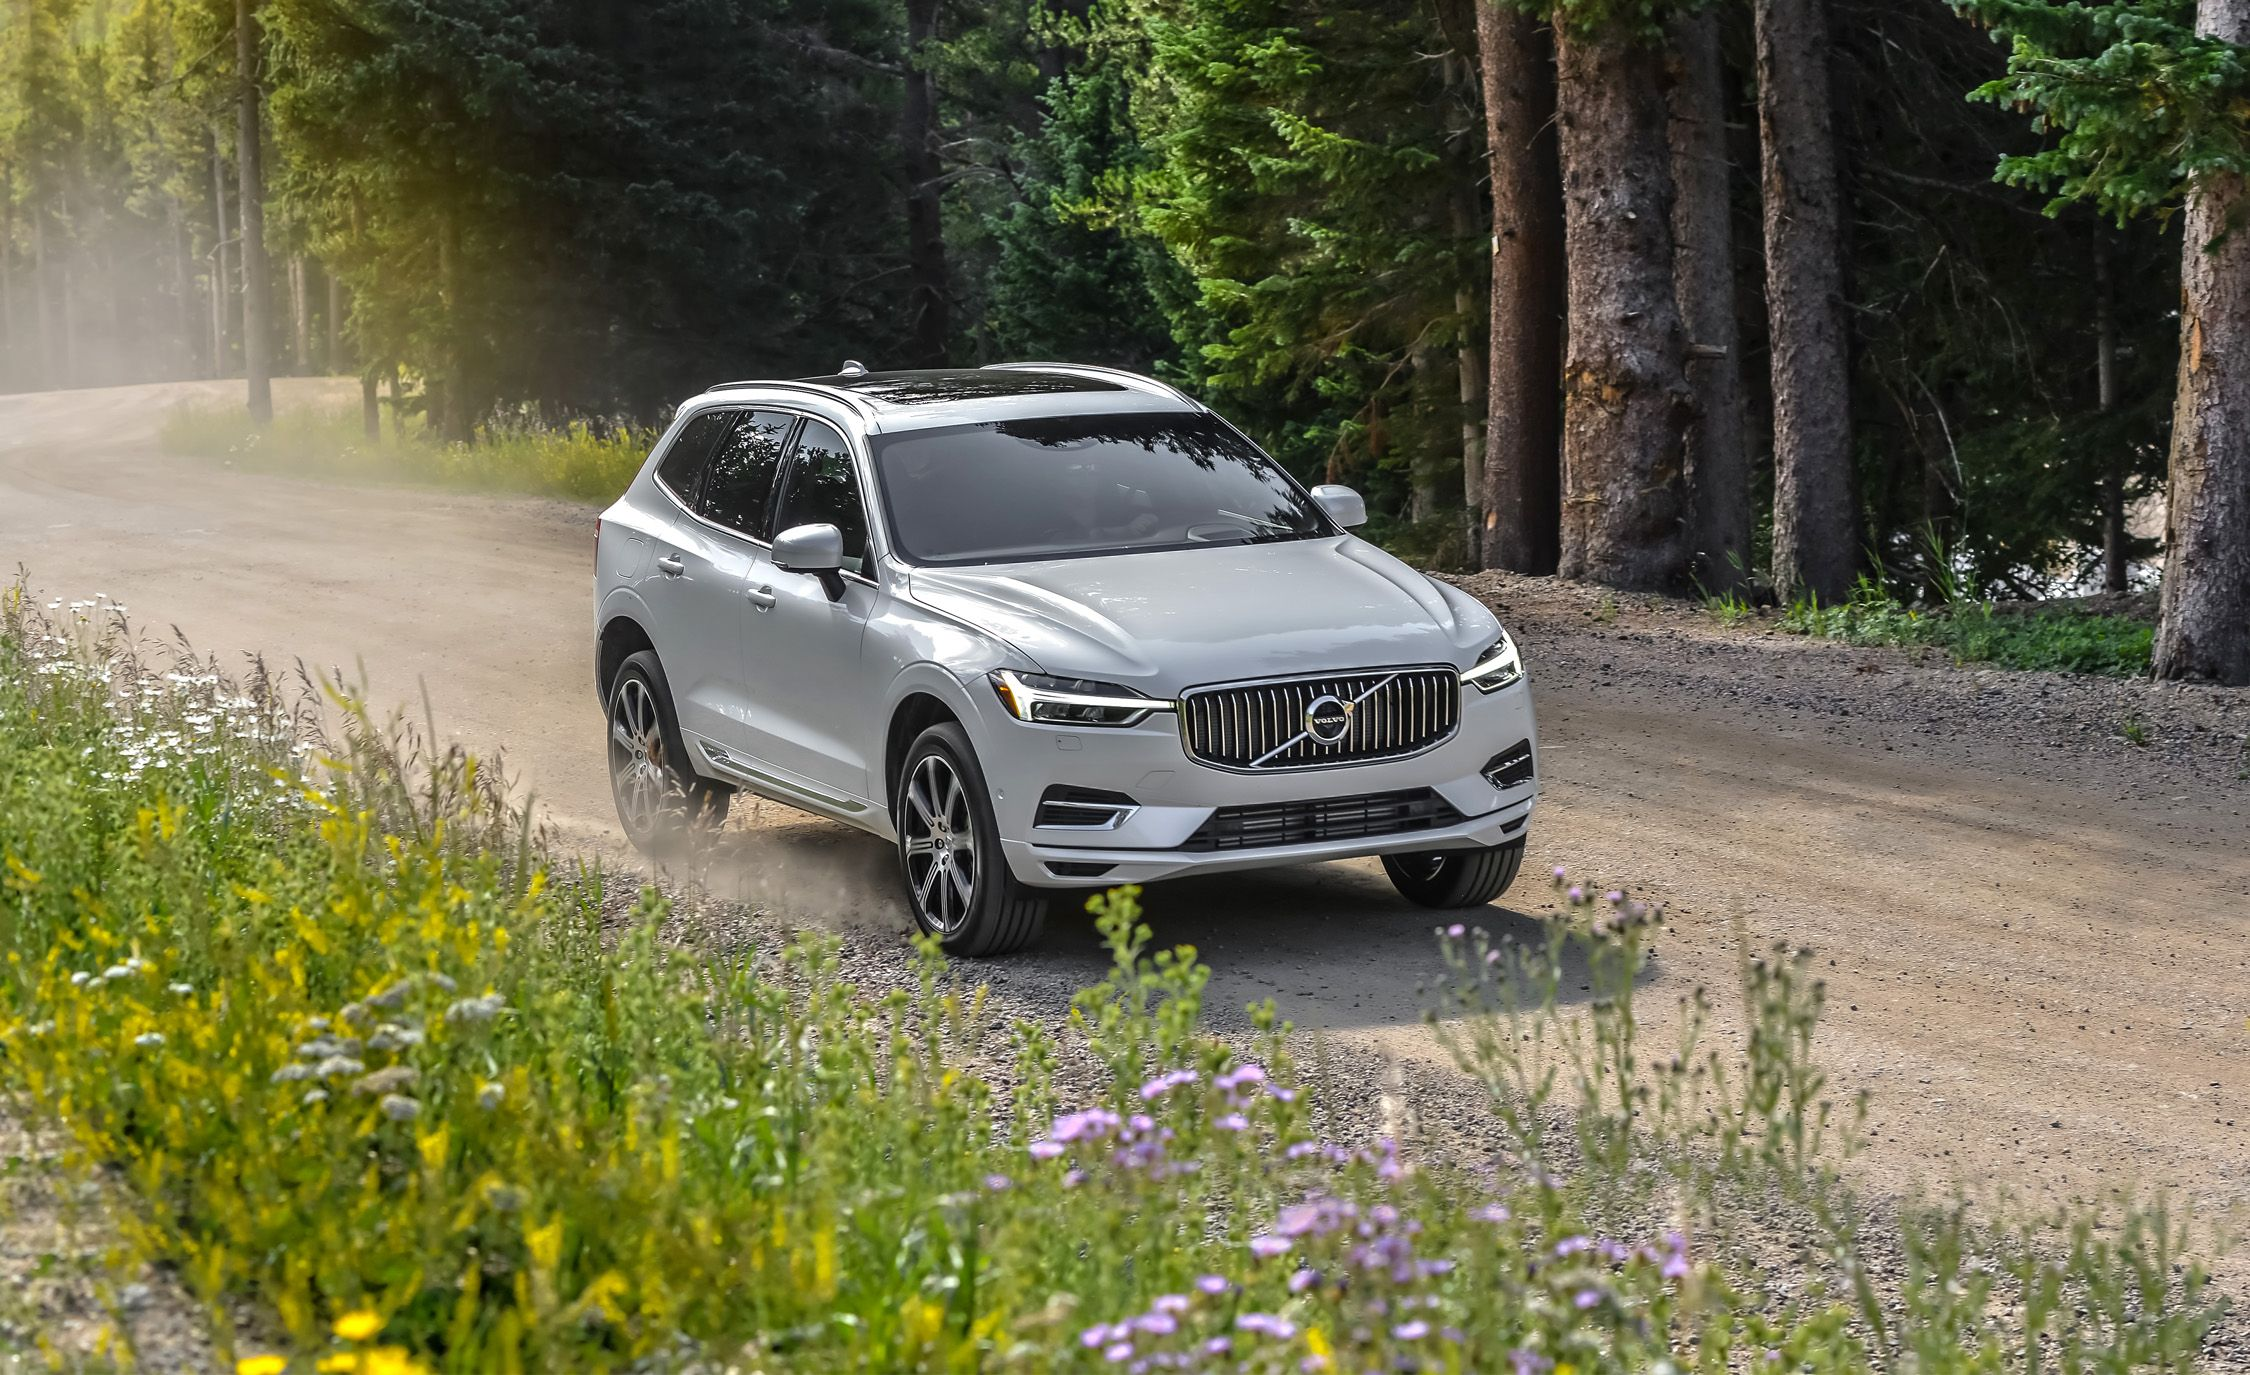 2019 Volvo XC70 Crossover SUV Review >> 2018 Volvo Xc60 T8 Plug In Hybrid First Drive Review Car And Driver